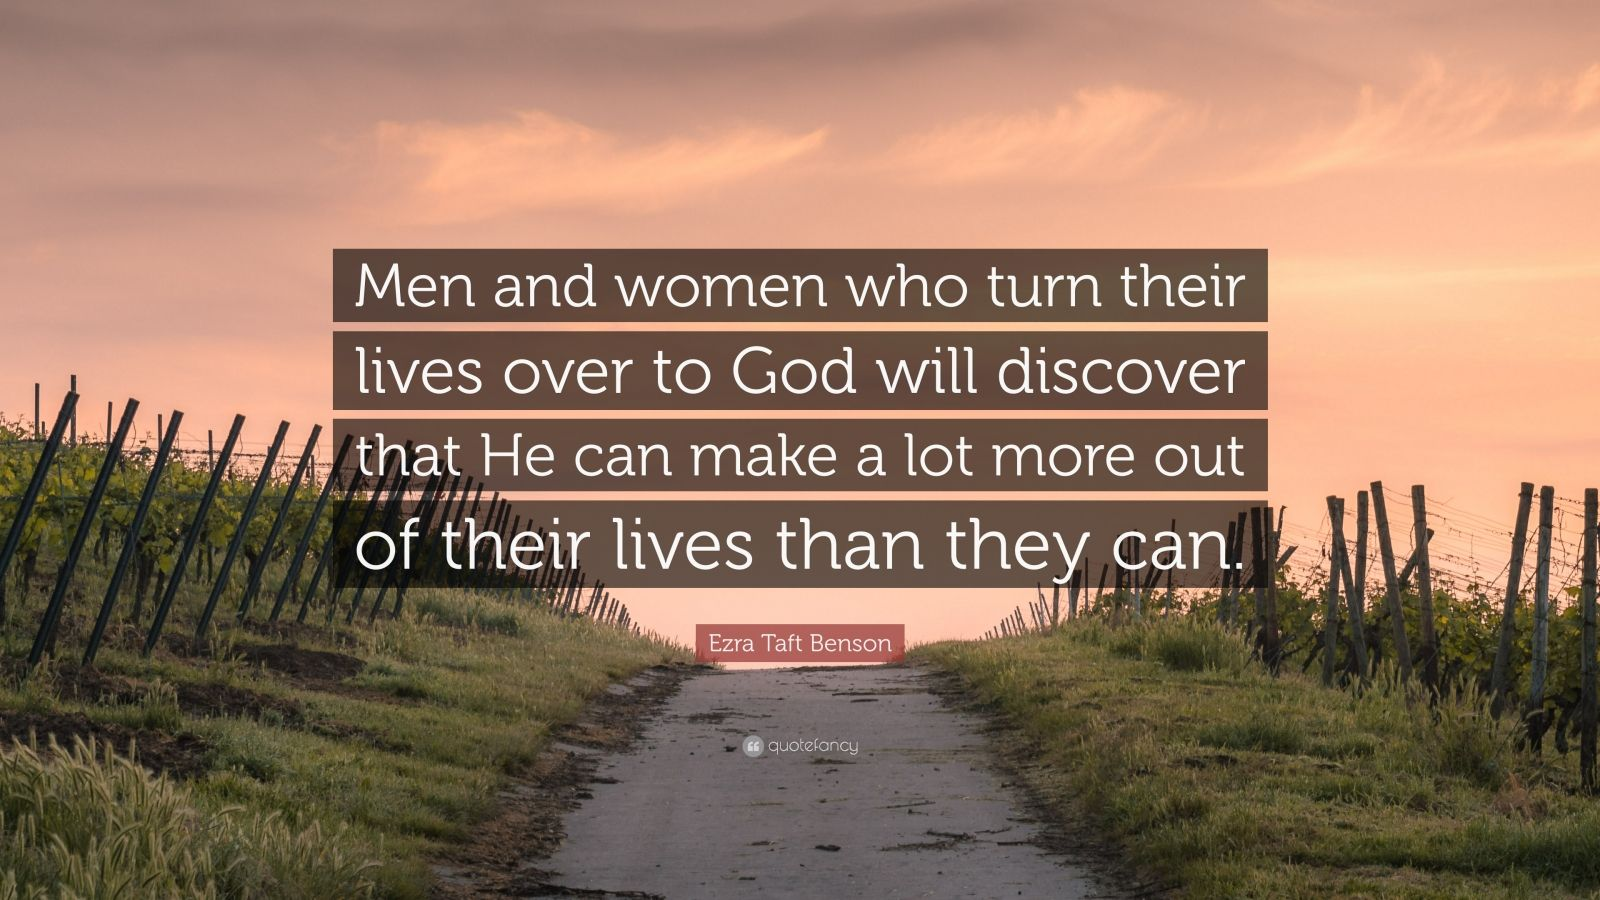 """Ezra Taft Benson Quote: """"Men and women who turn their lives over to God will discover that He can make a lot more out of their lives than they can."""""""